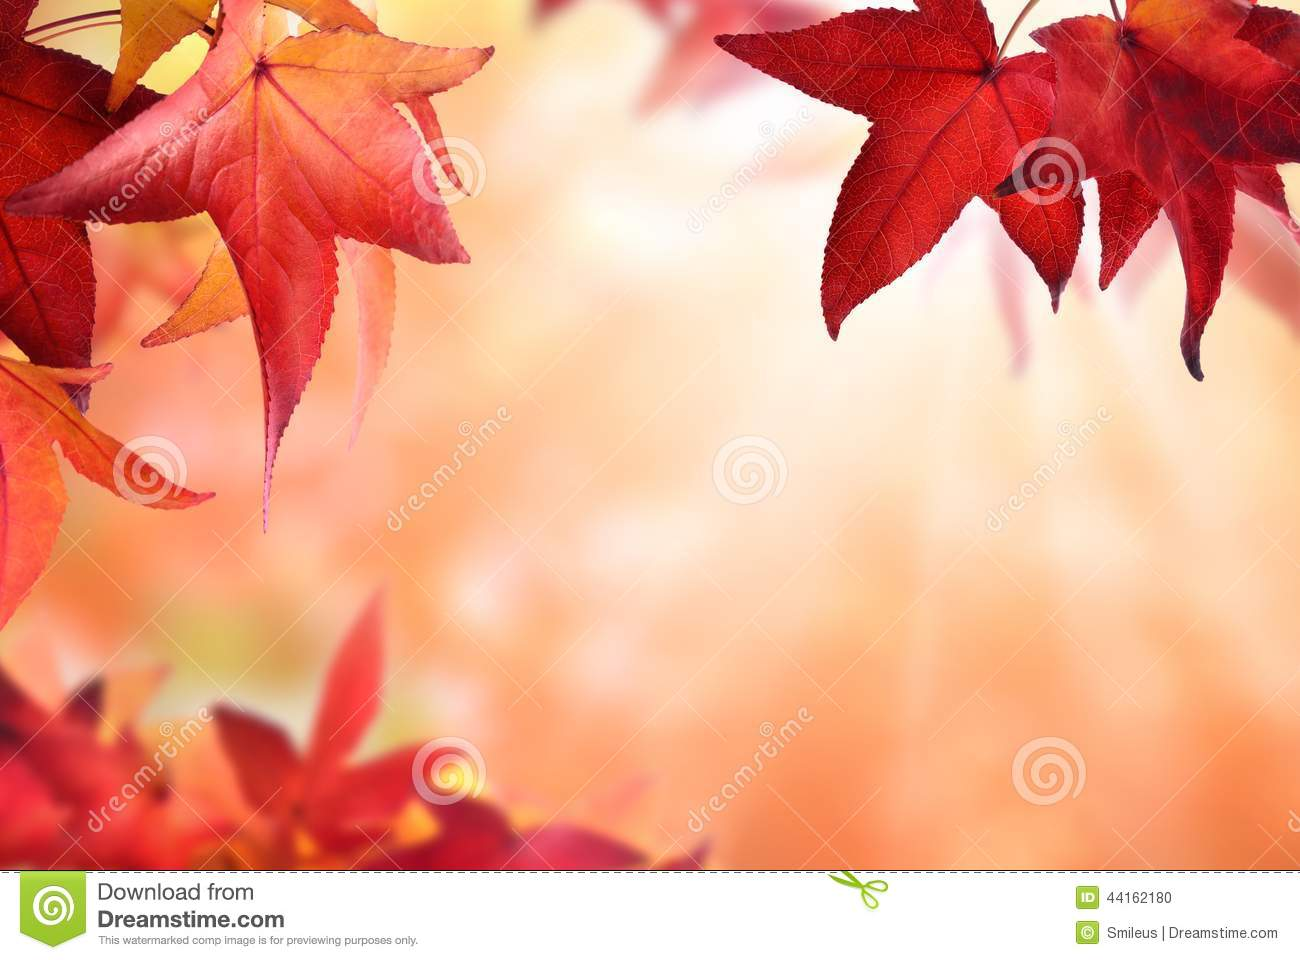 Fall Leaves Wallpaper Border Autumn Bokeh Background With Red Leaves Stock Photo